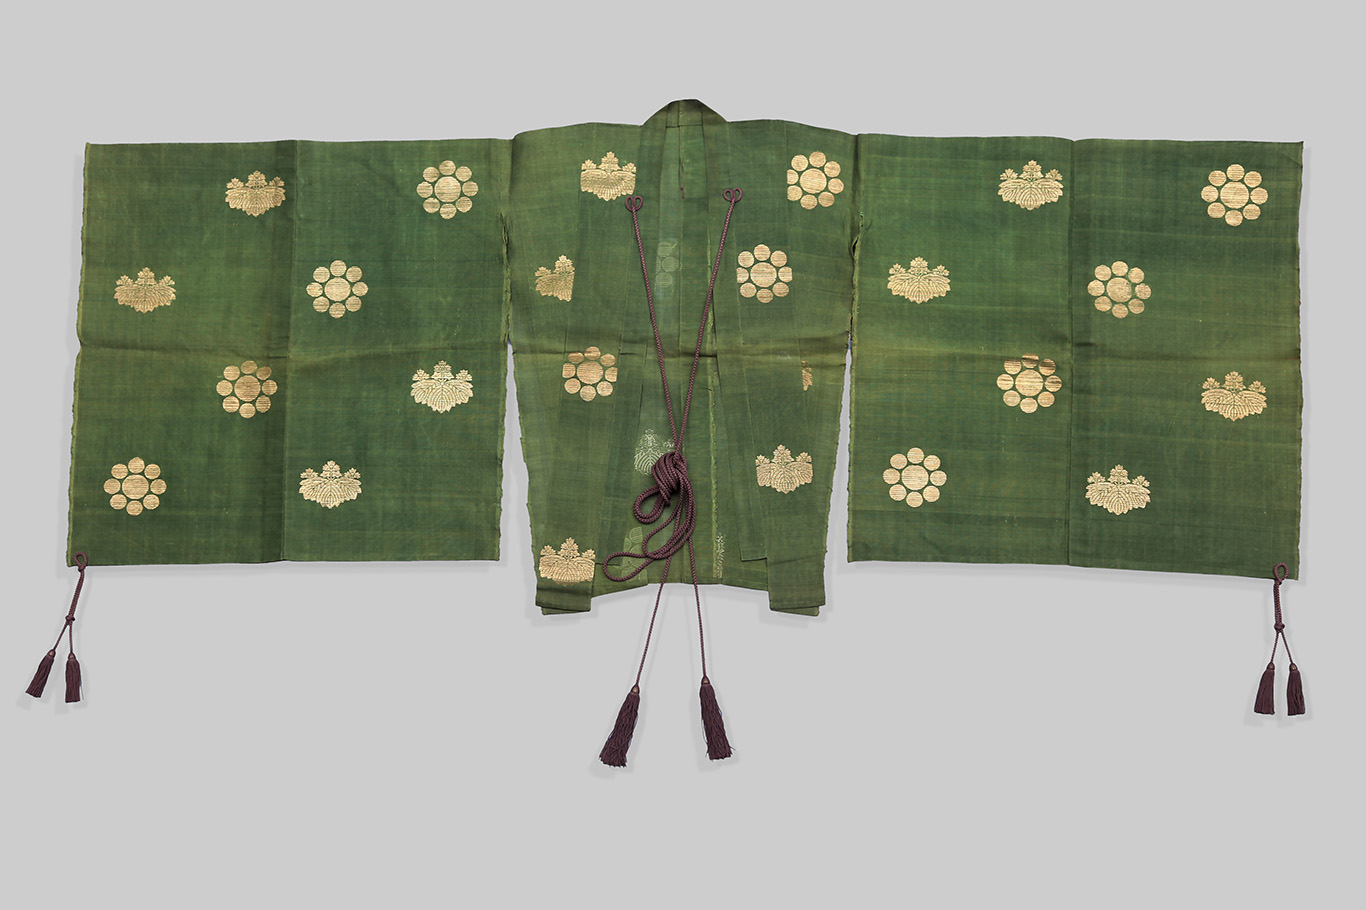 Japanese Hitatare-style Robe for Kemari, 18th century, mid-Edo period (1615-1868)